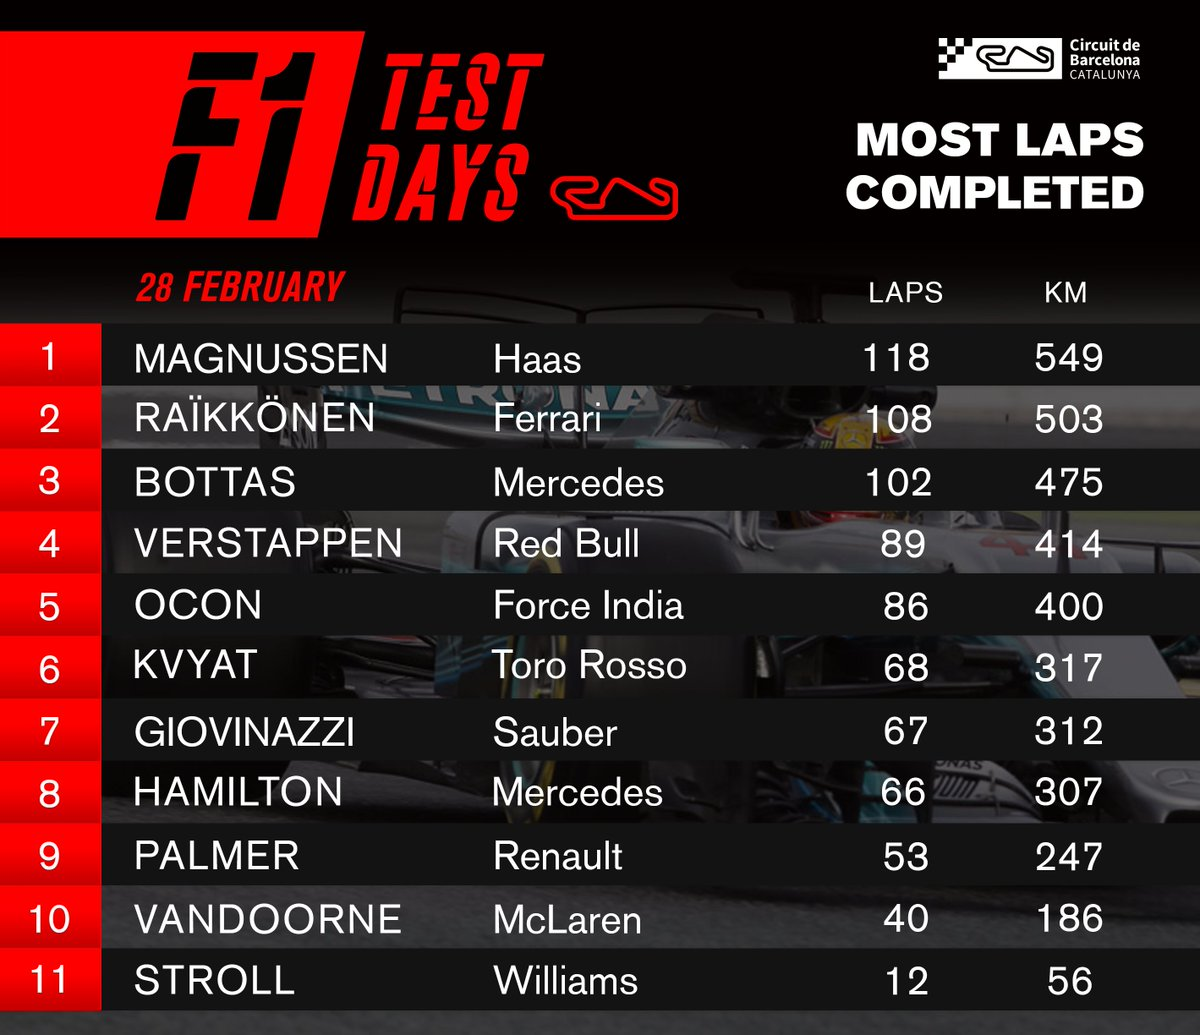 Circuit De Barcelona Catalunya On Twitter Impressive Day For Kevin Scoreboard Magnussen But Take Care Bottas 102 Laps In The Afternoon